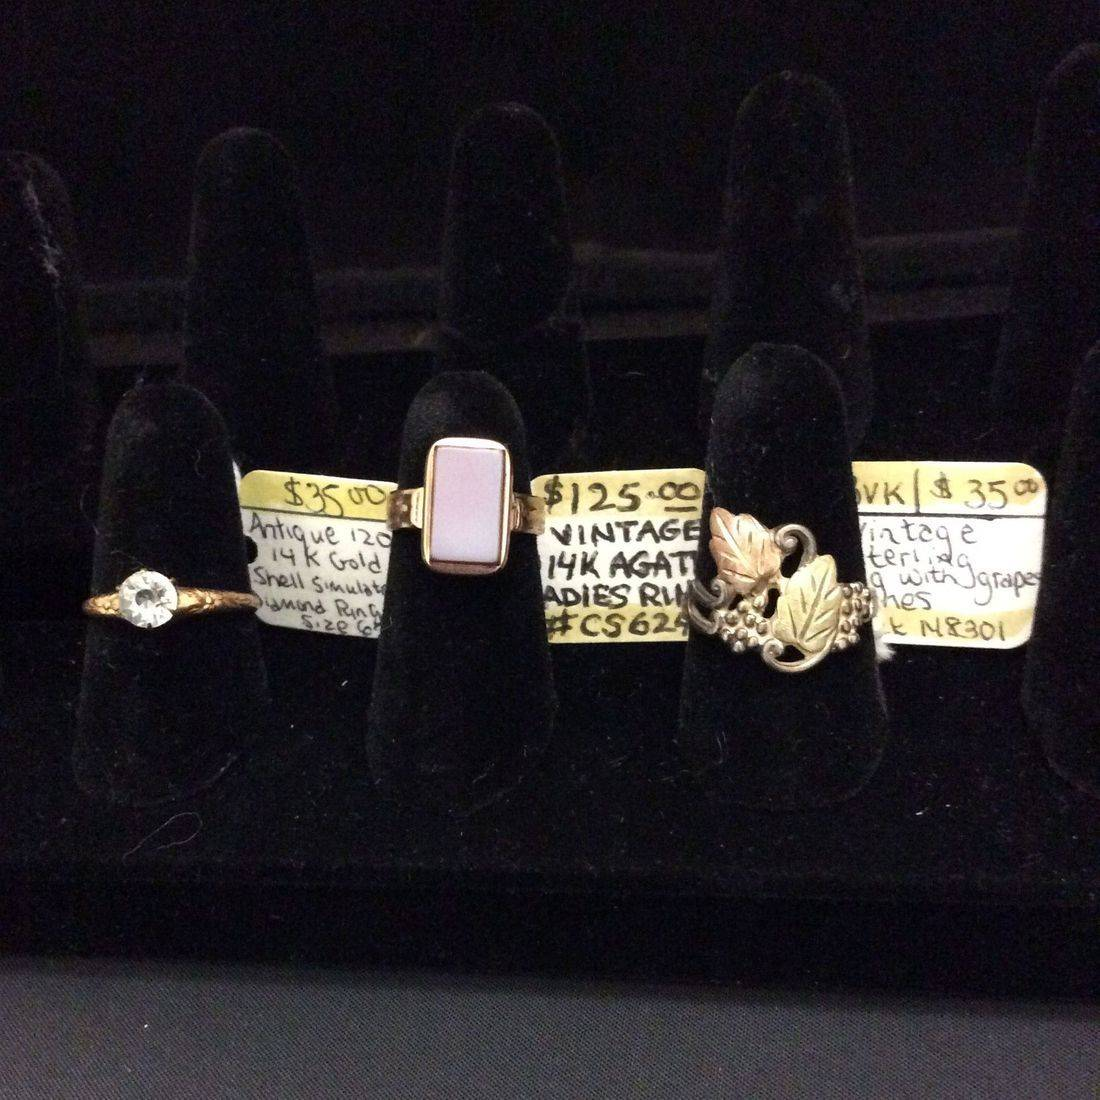 Ant. 120th 14K Gold, Shell Simulated Diamond Ring  $35,  Vin. 14K Agate, Ladies Ring  $125,  Vin. Sterling, Grapes & Vines Ring  $35.00